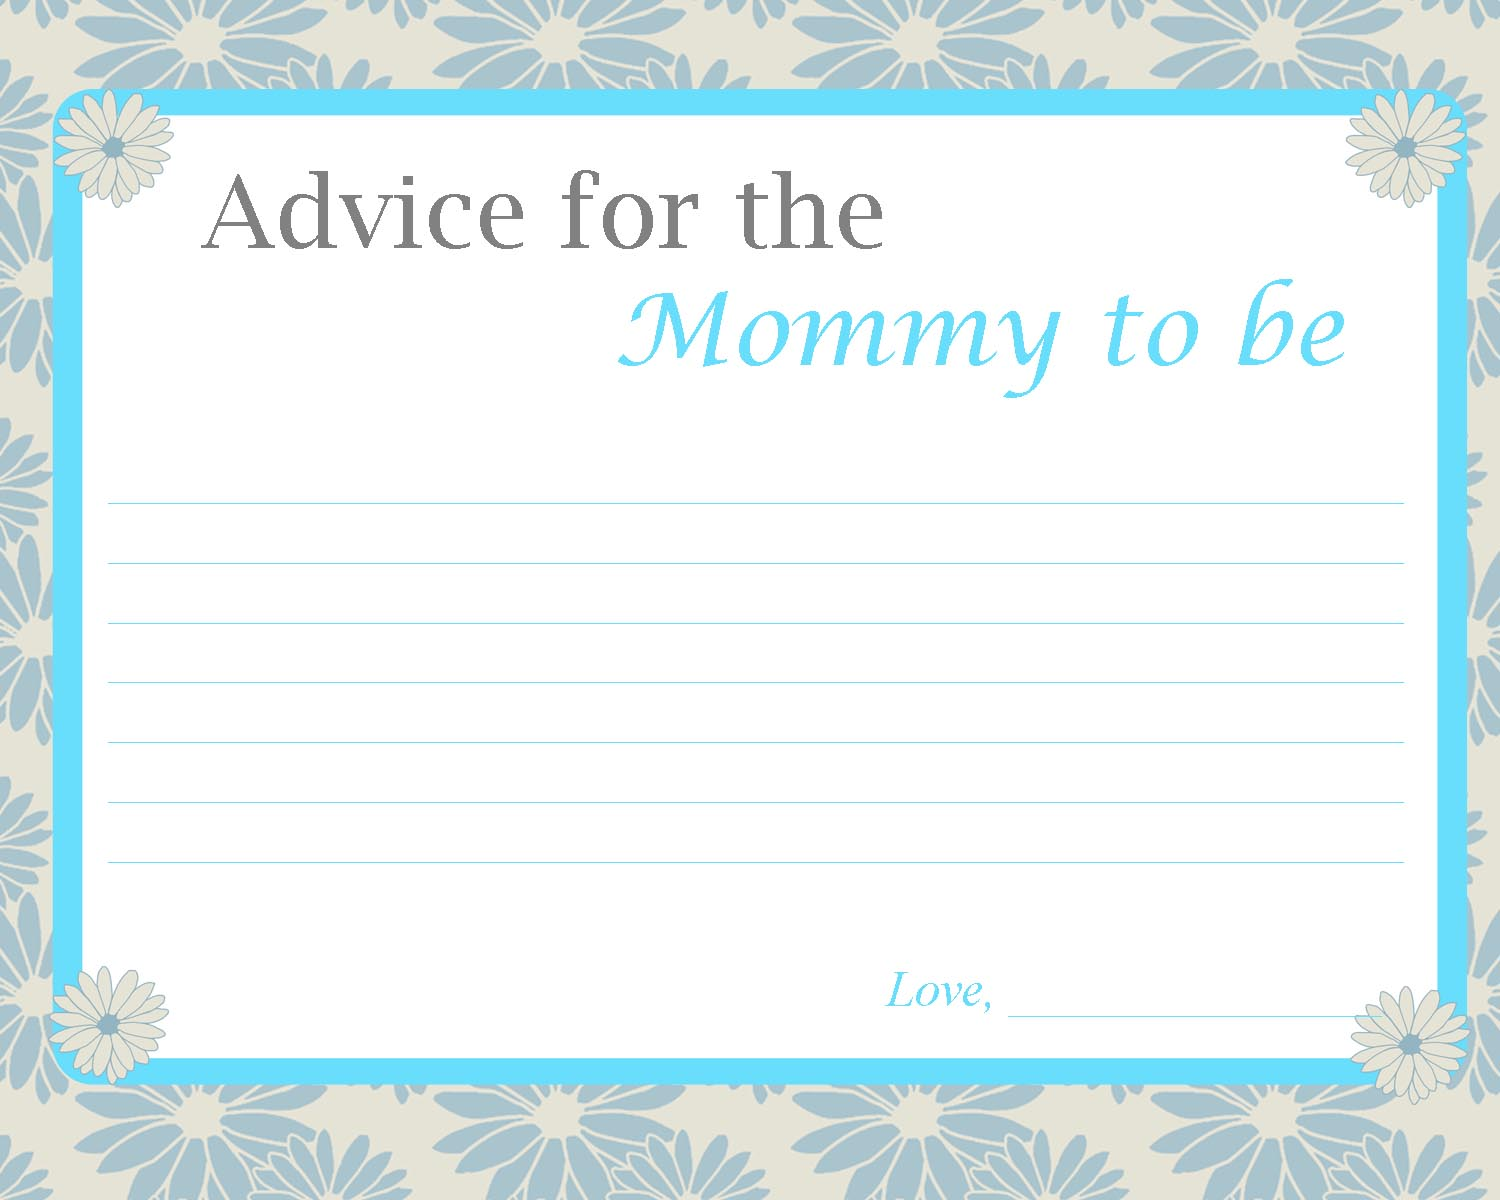 Browse Some Ideas For Baby Shower Activities: